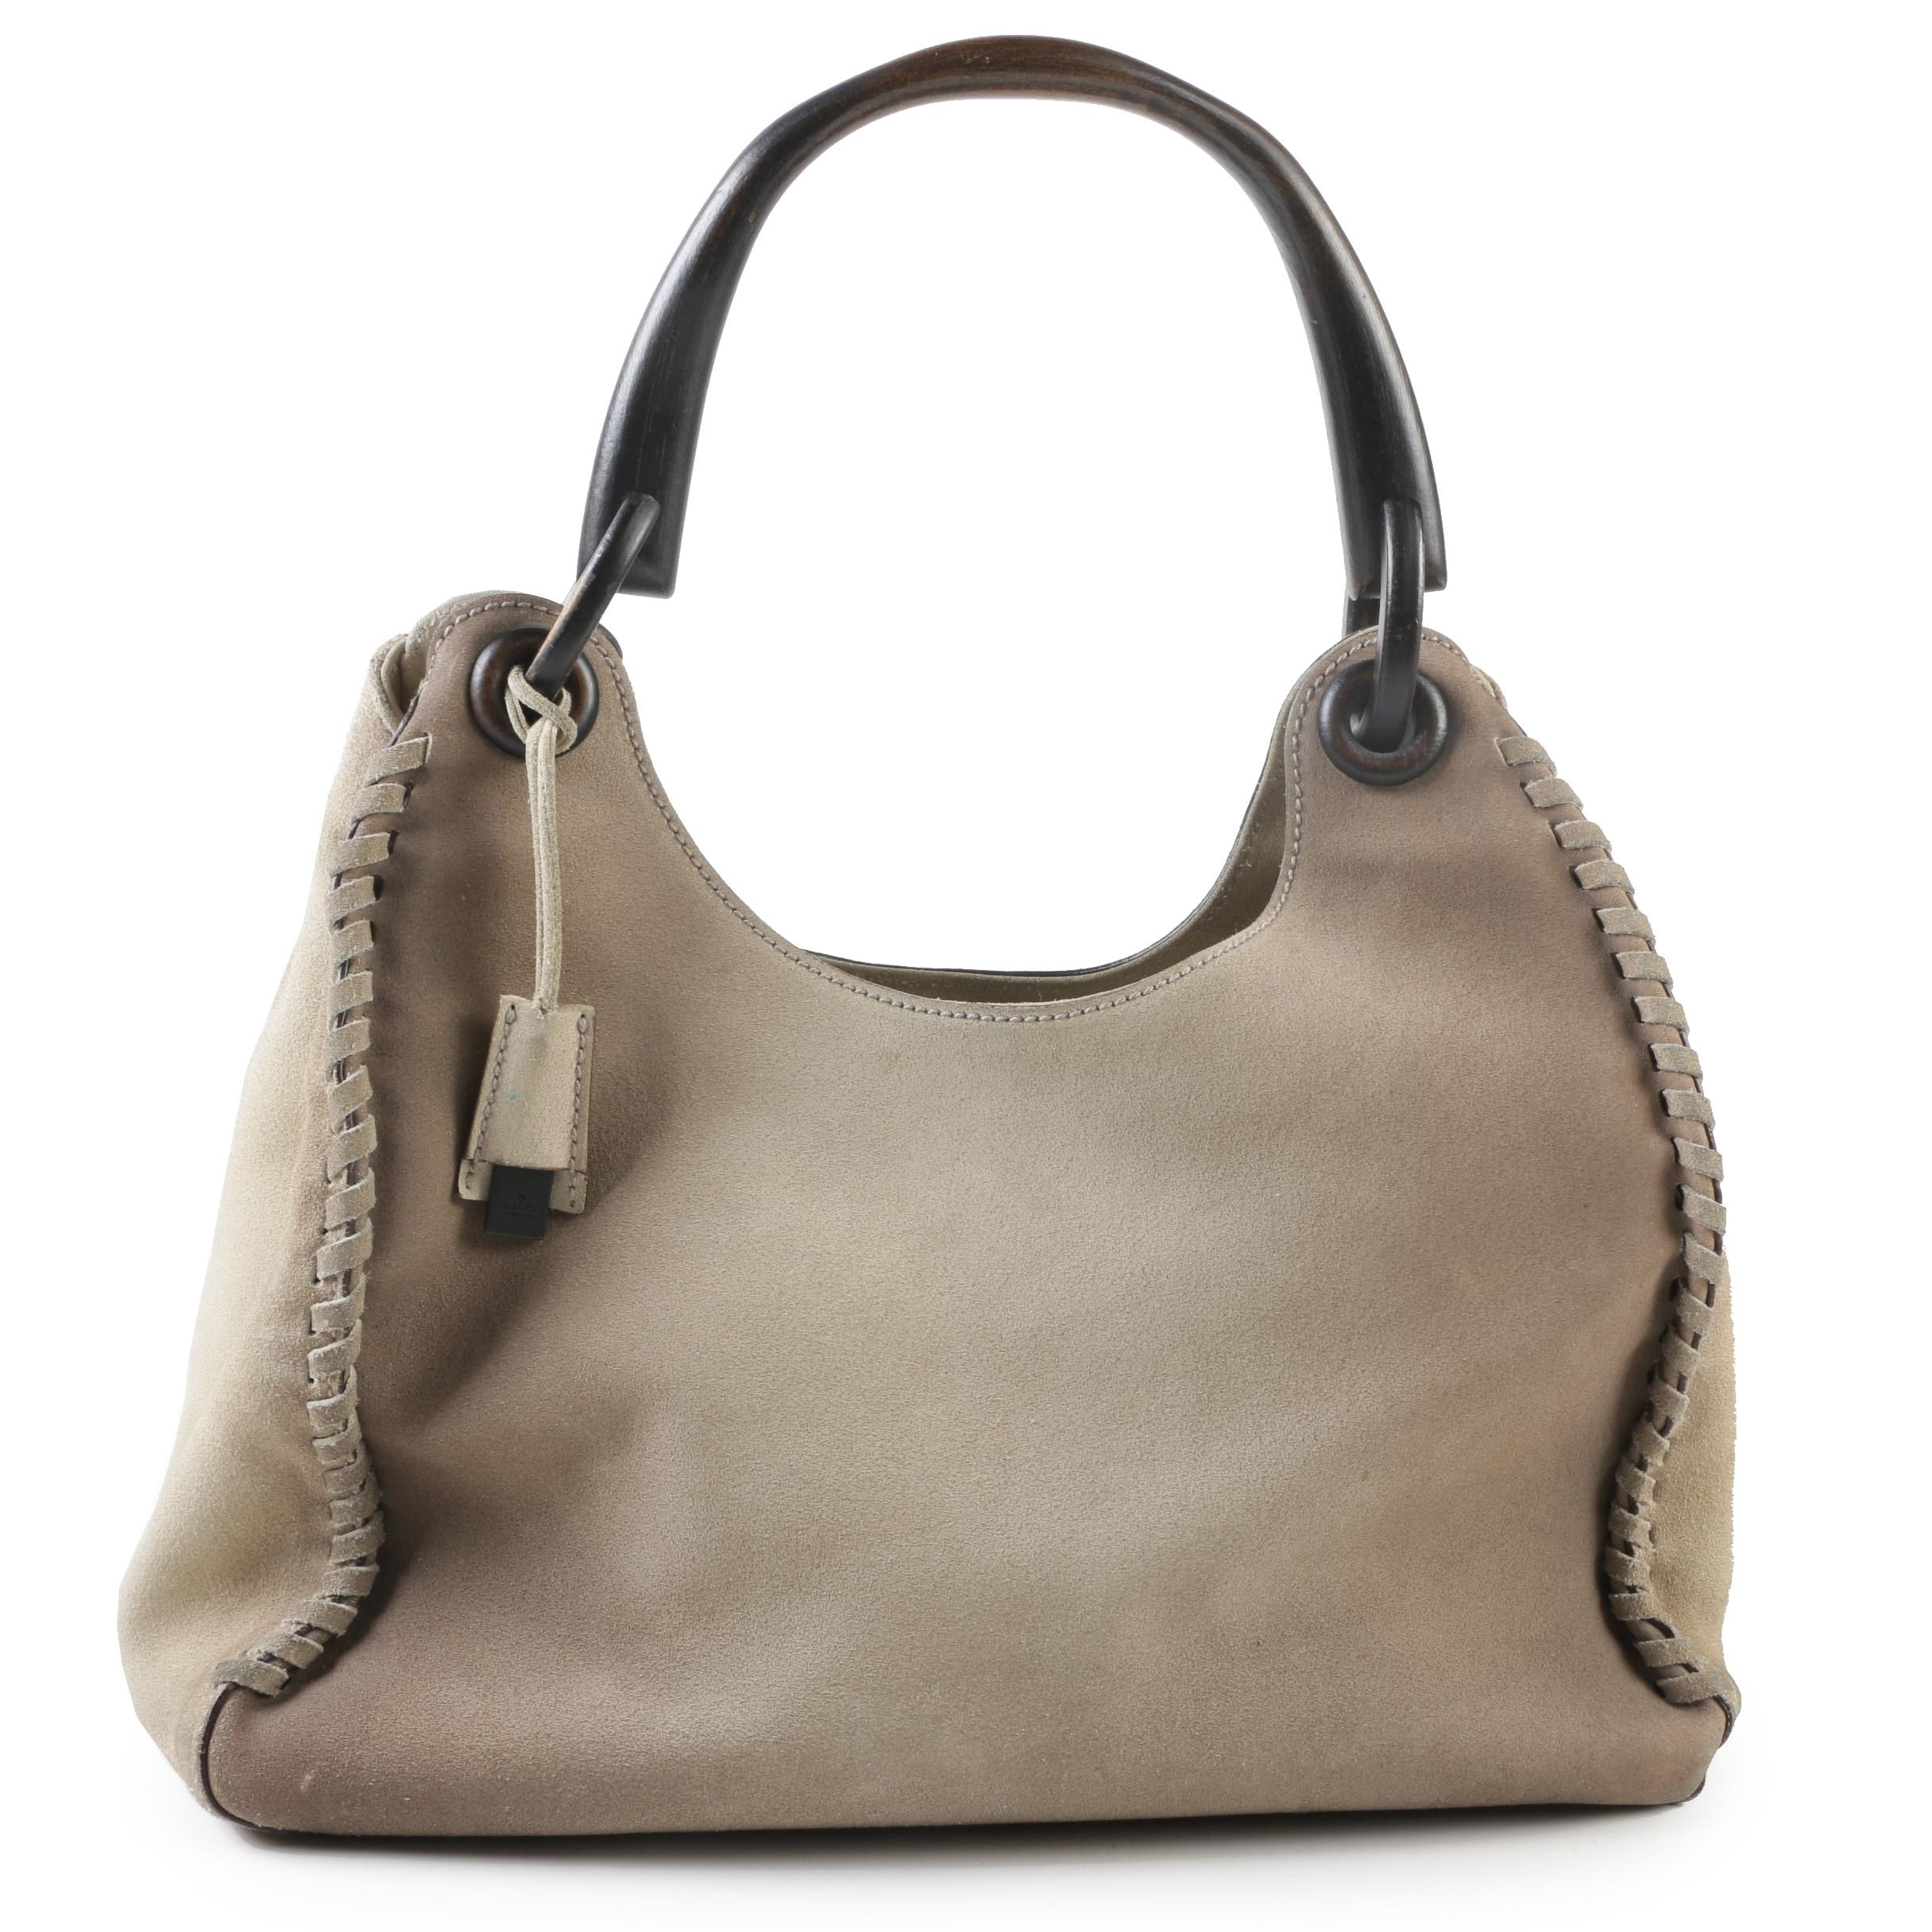 Gucci Stone Suede Whipstitched Hobo Bag with Wood Handle